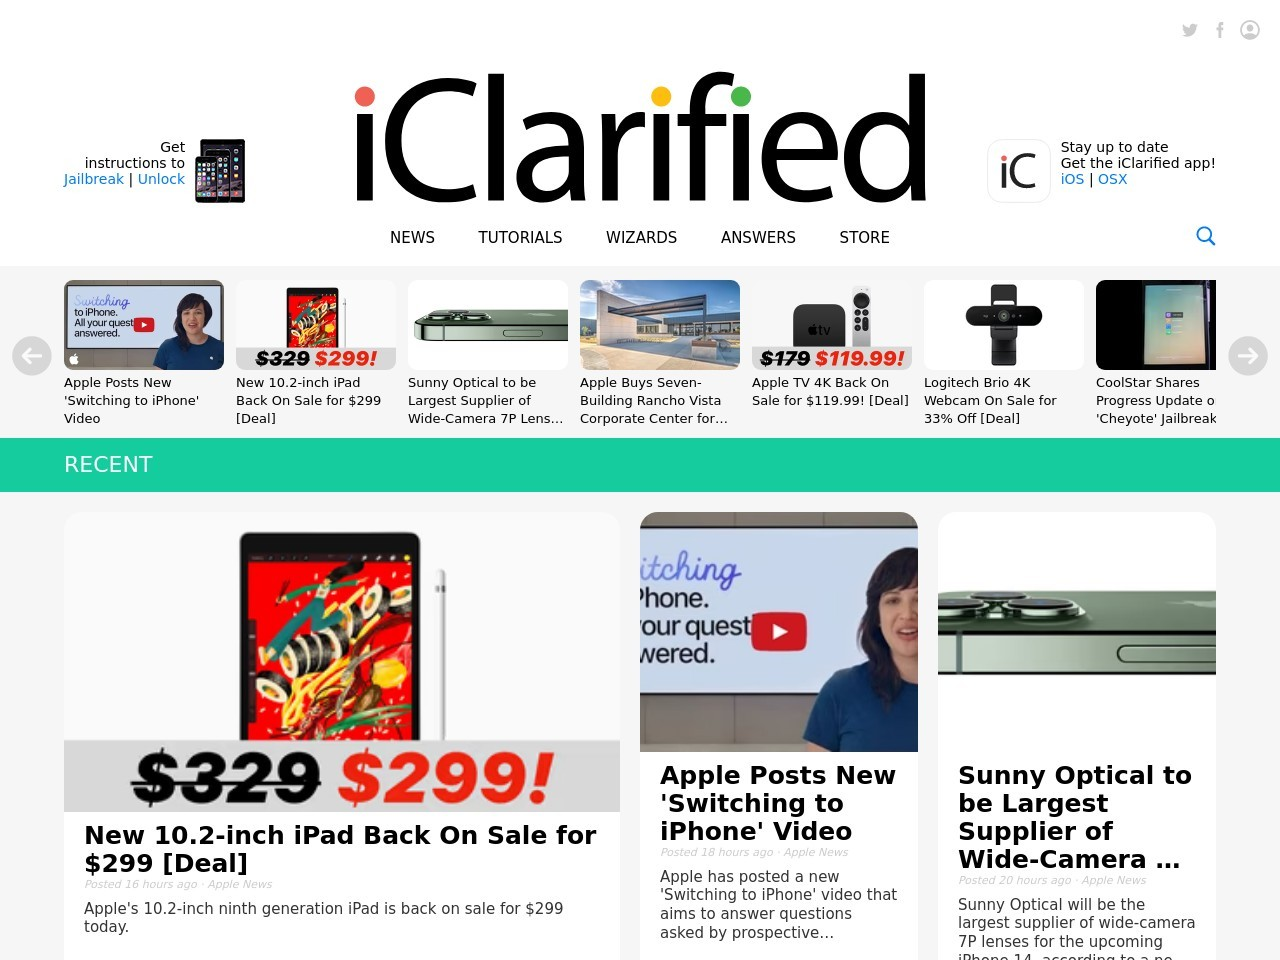 iOS Push Notifications Routed to Google Glass [Video] – iClarified